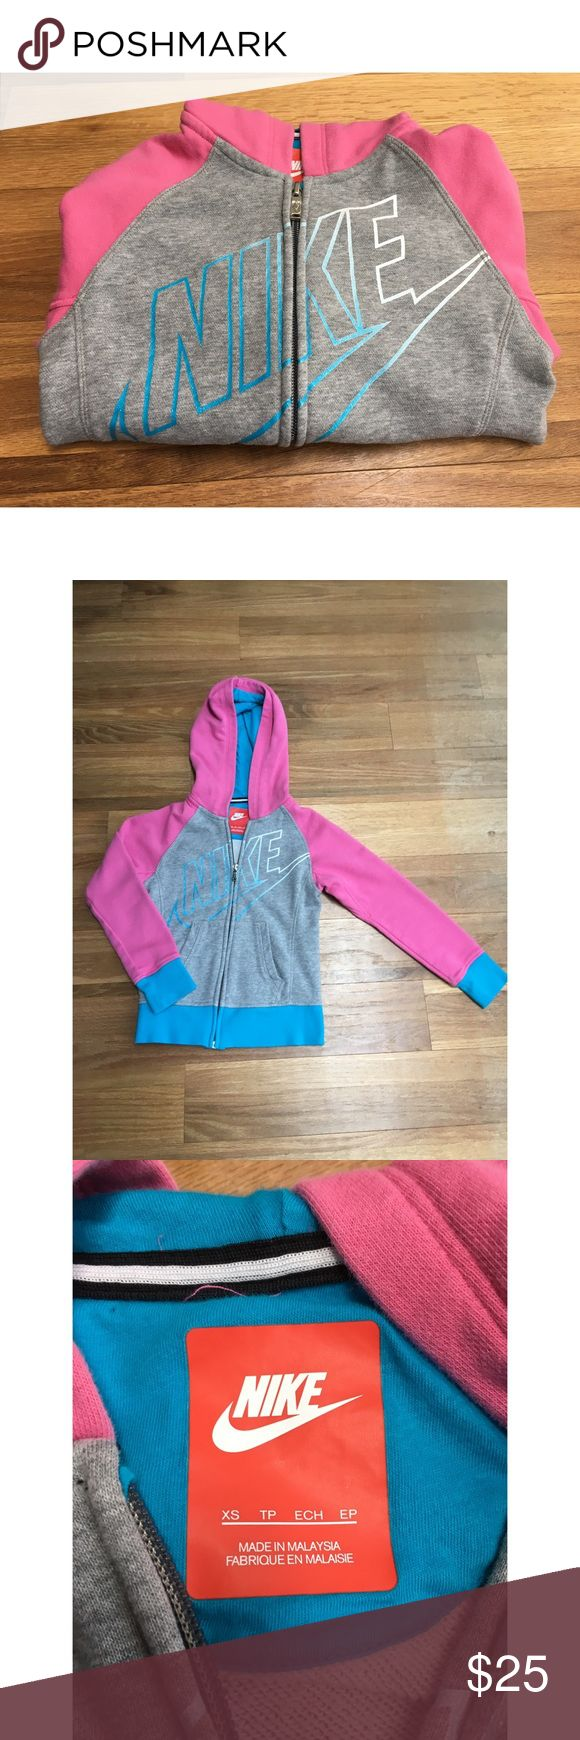 Girls NIKE Pink, Blue ,and Grey Zip Up Hoodie Excellent used condition, not sure if it was ever even worn! From my pet free and smoke free home no trades. Nike Shirts & Tops Sweatshirts & Hoodies